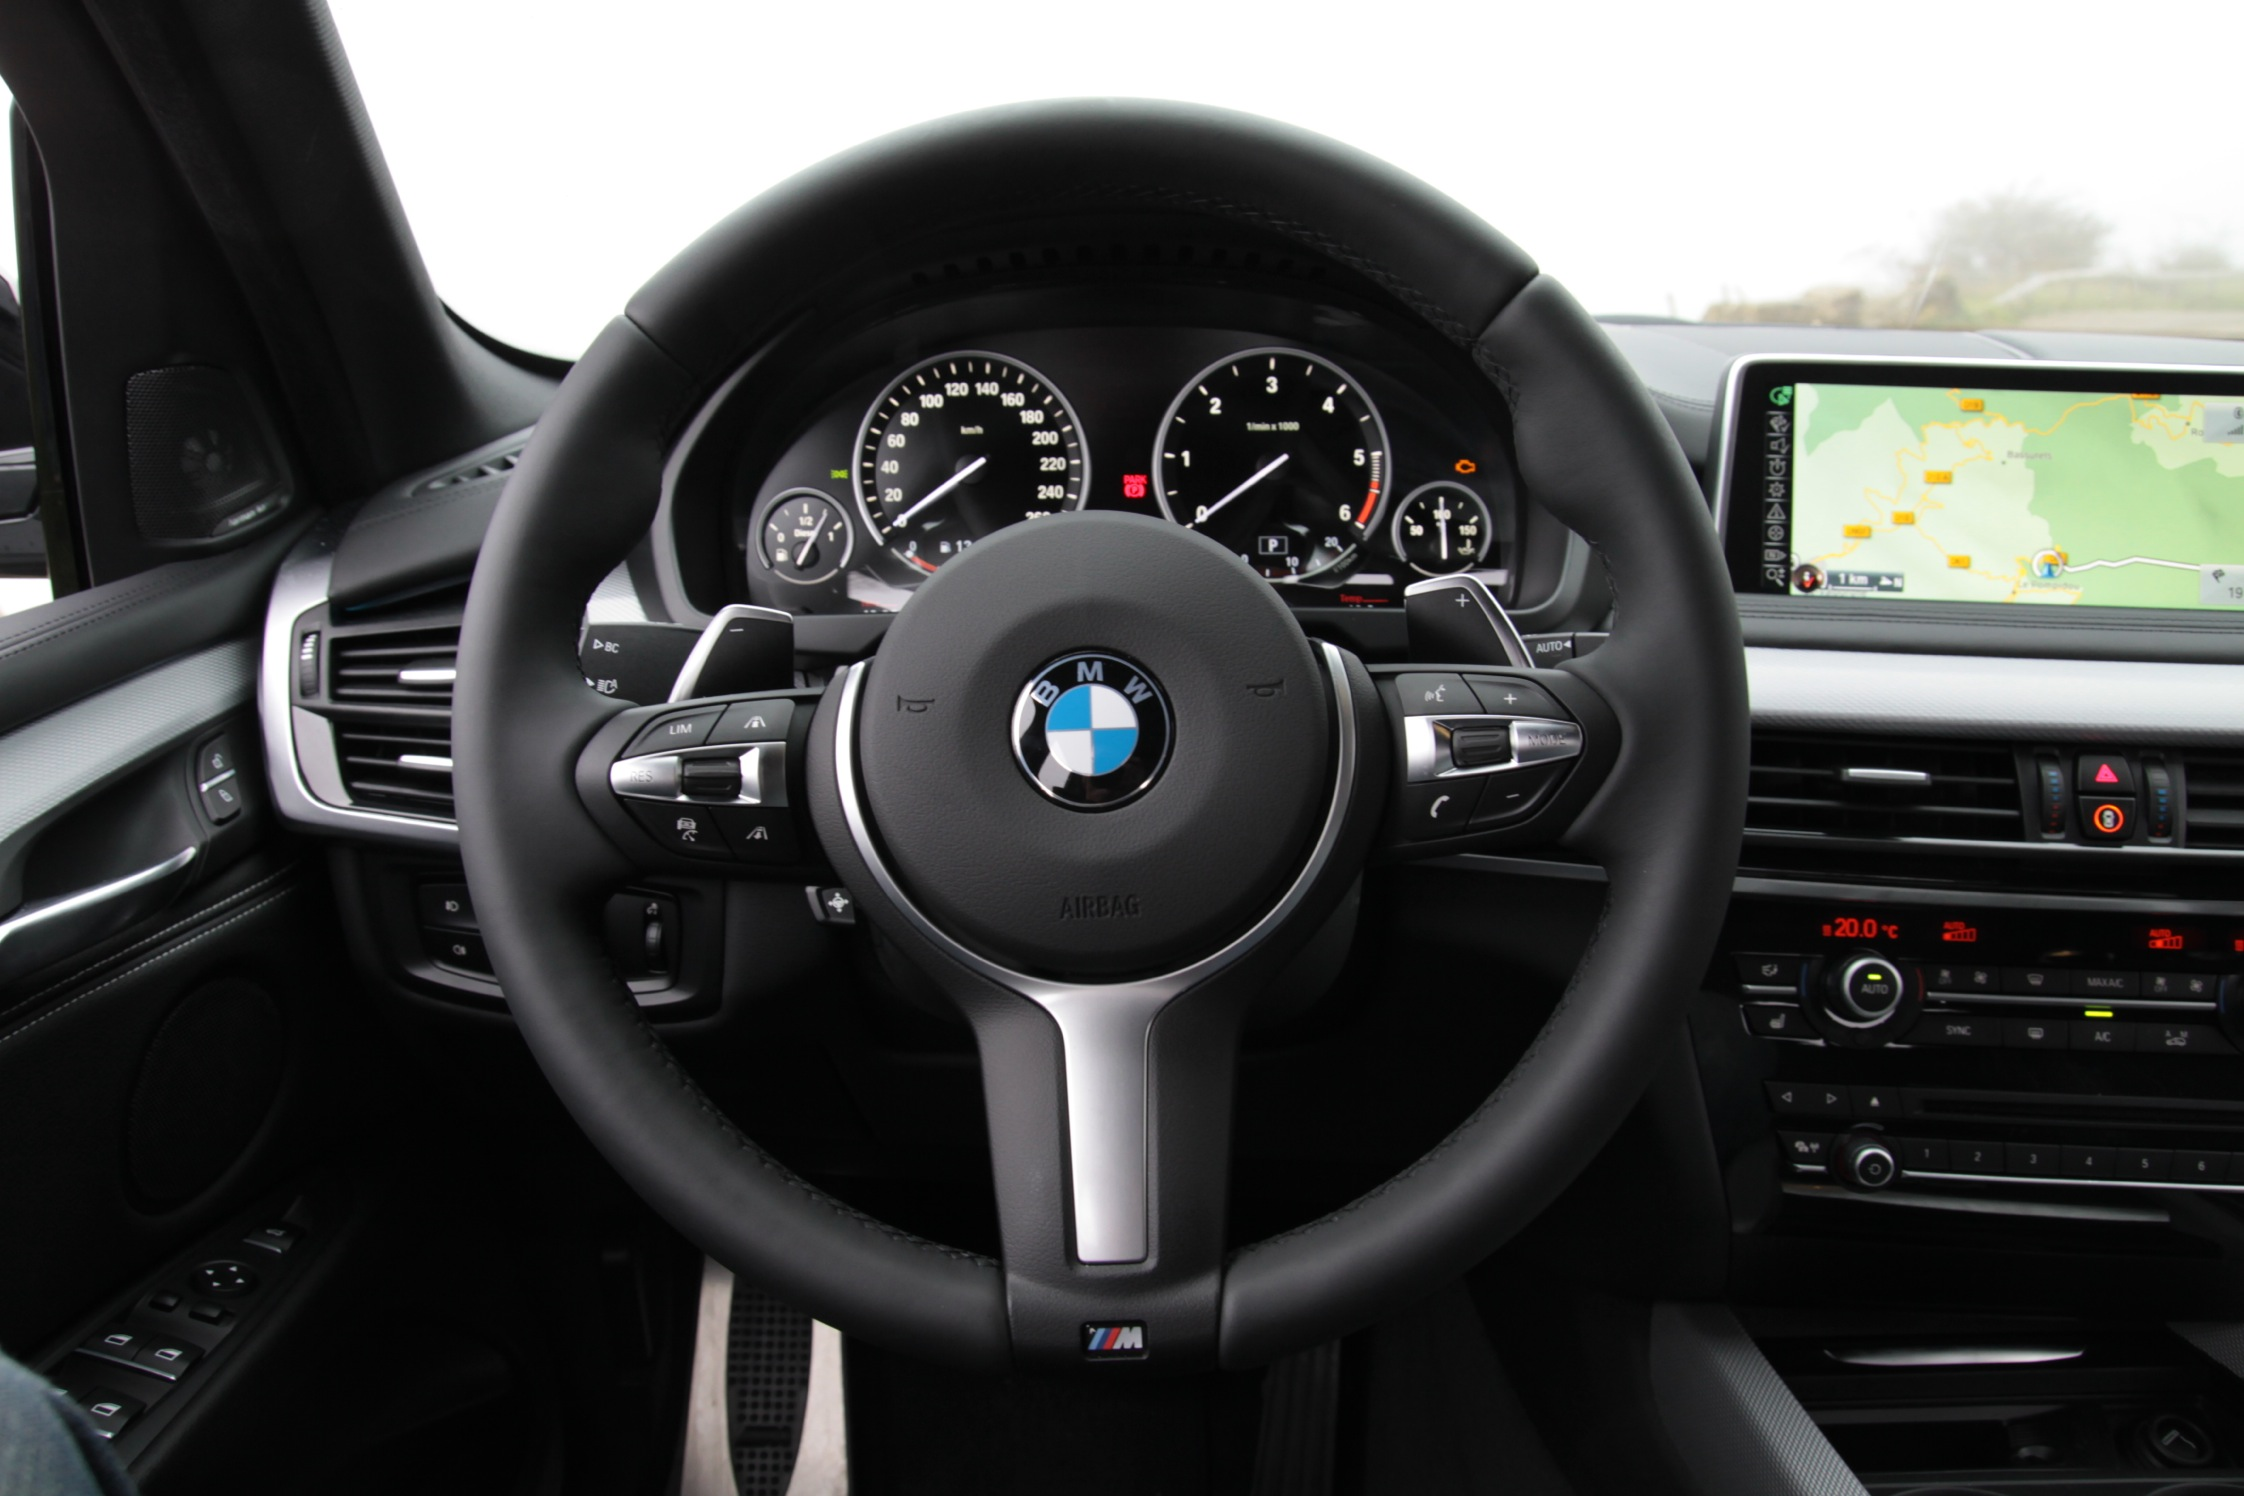 Essai bmw x5 m50d motorlegend for Interieur x5